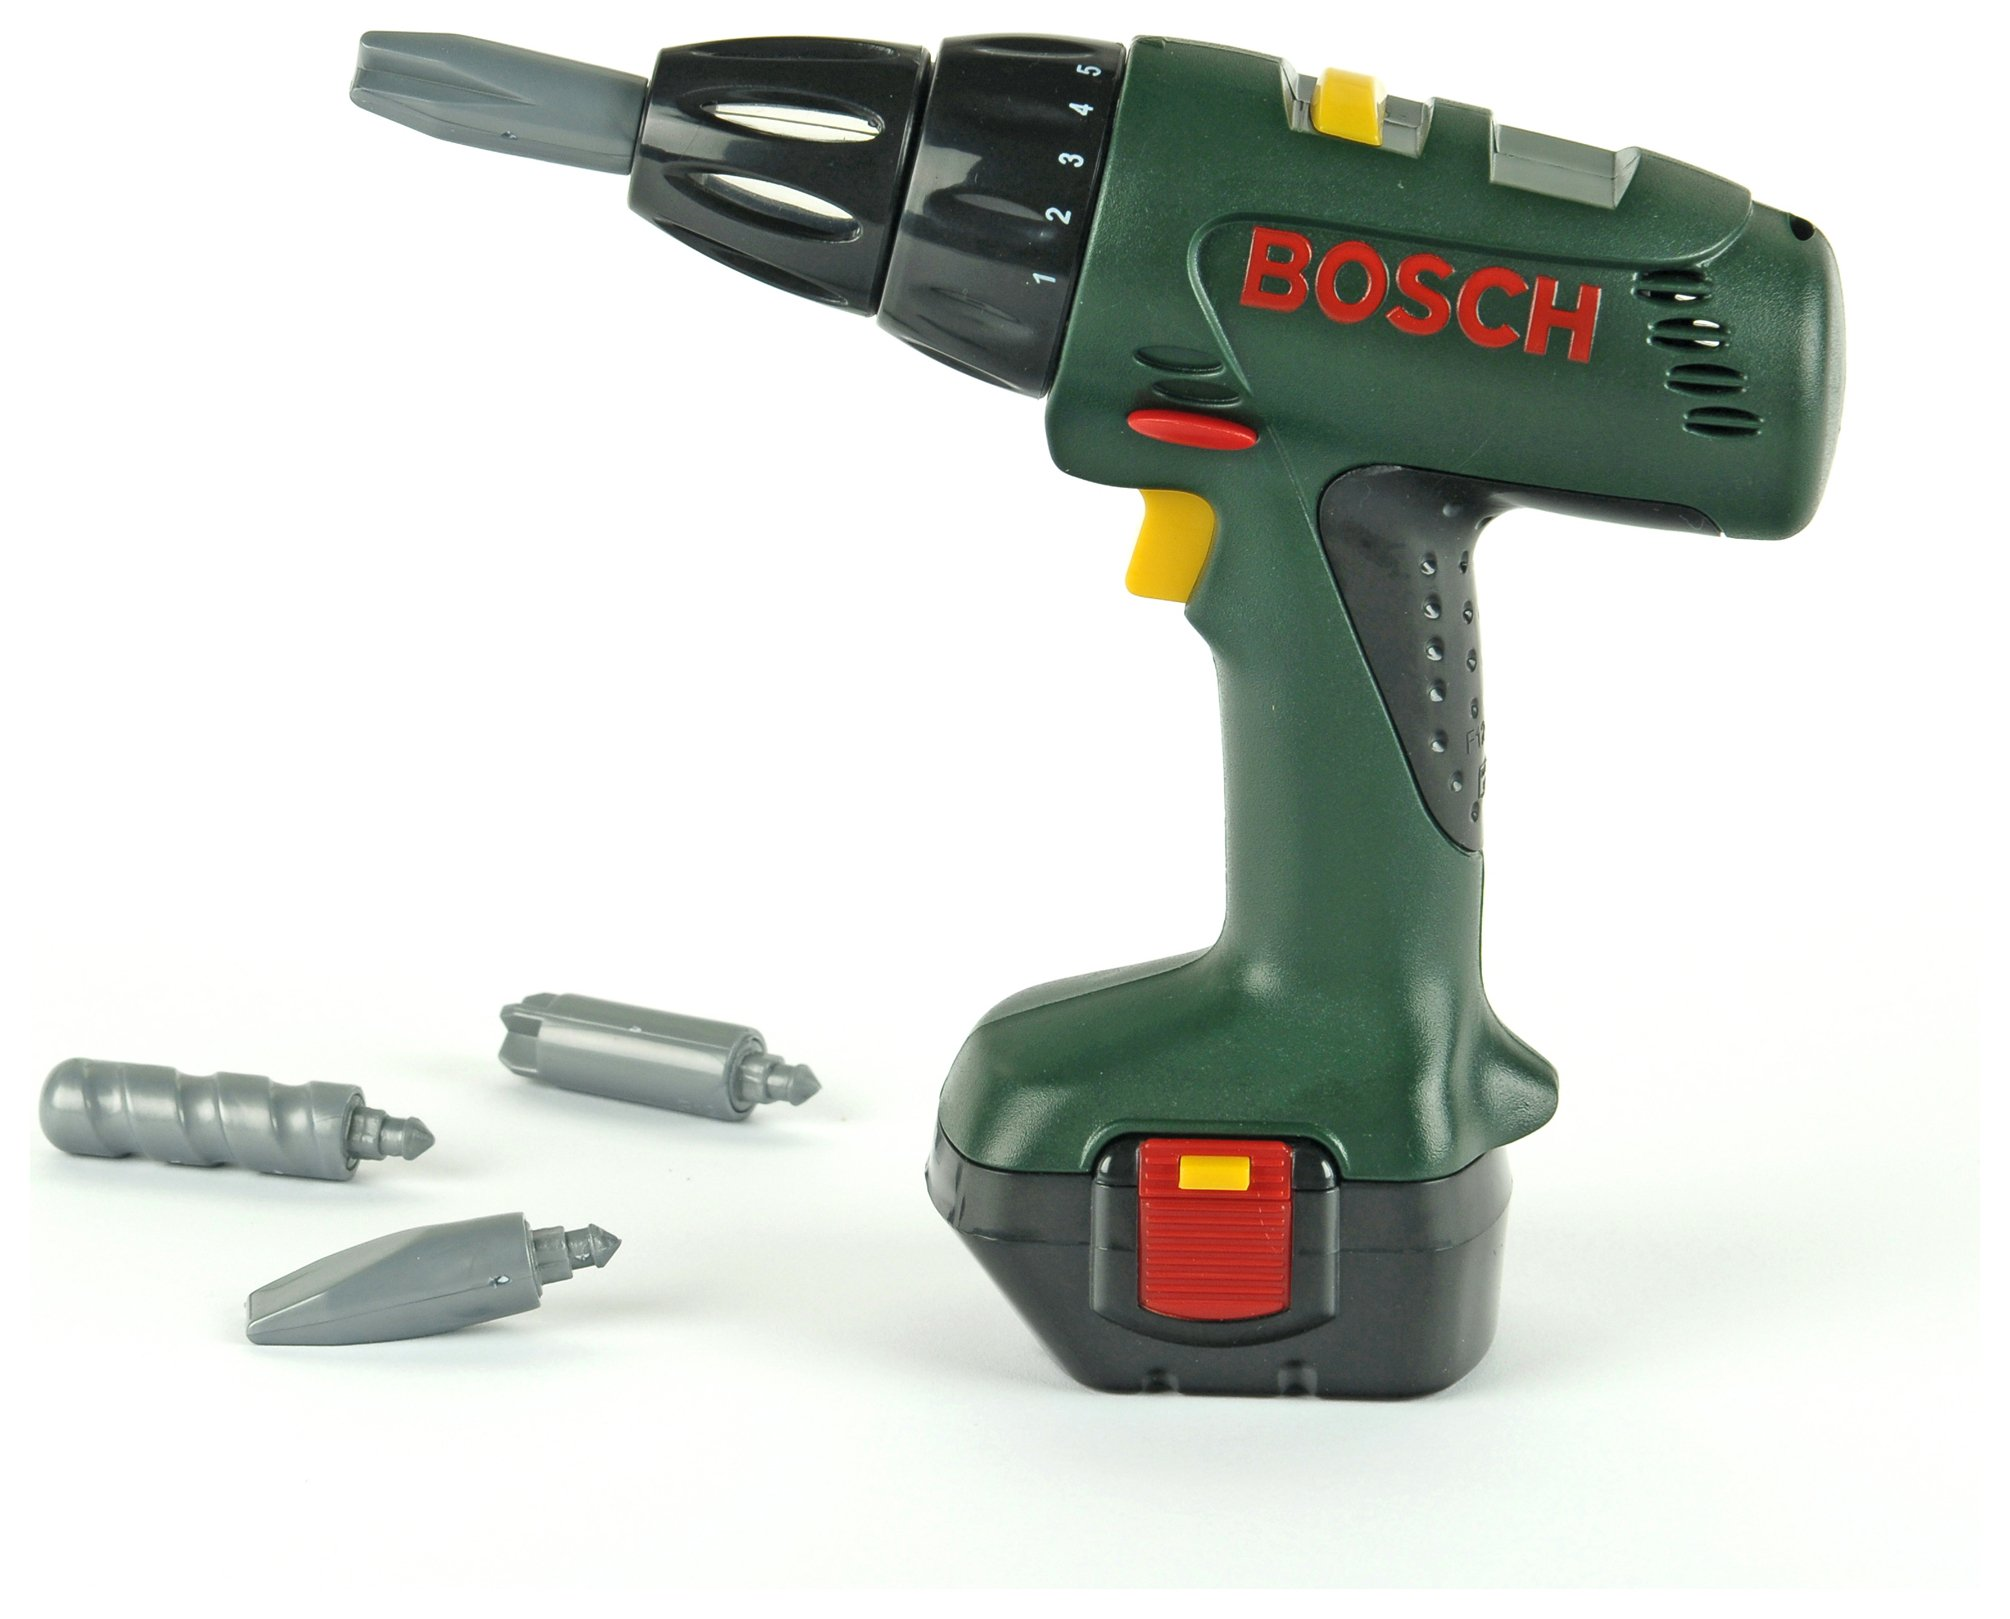 bosch-cordless-toy-power-drill